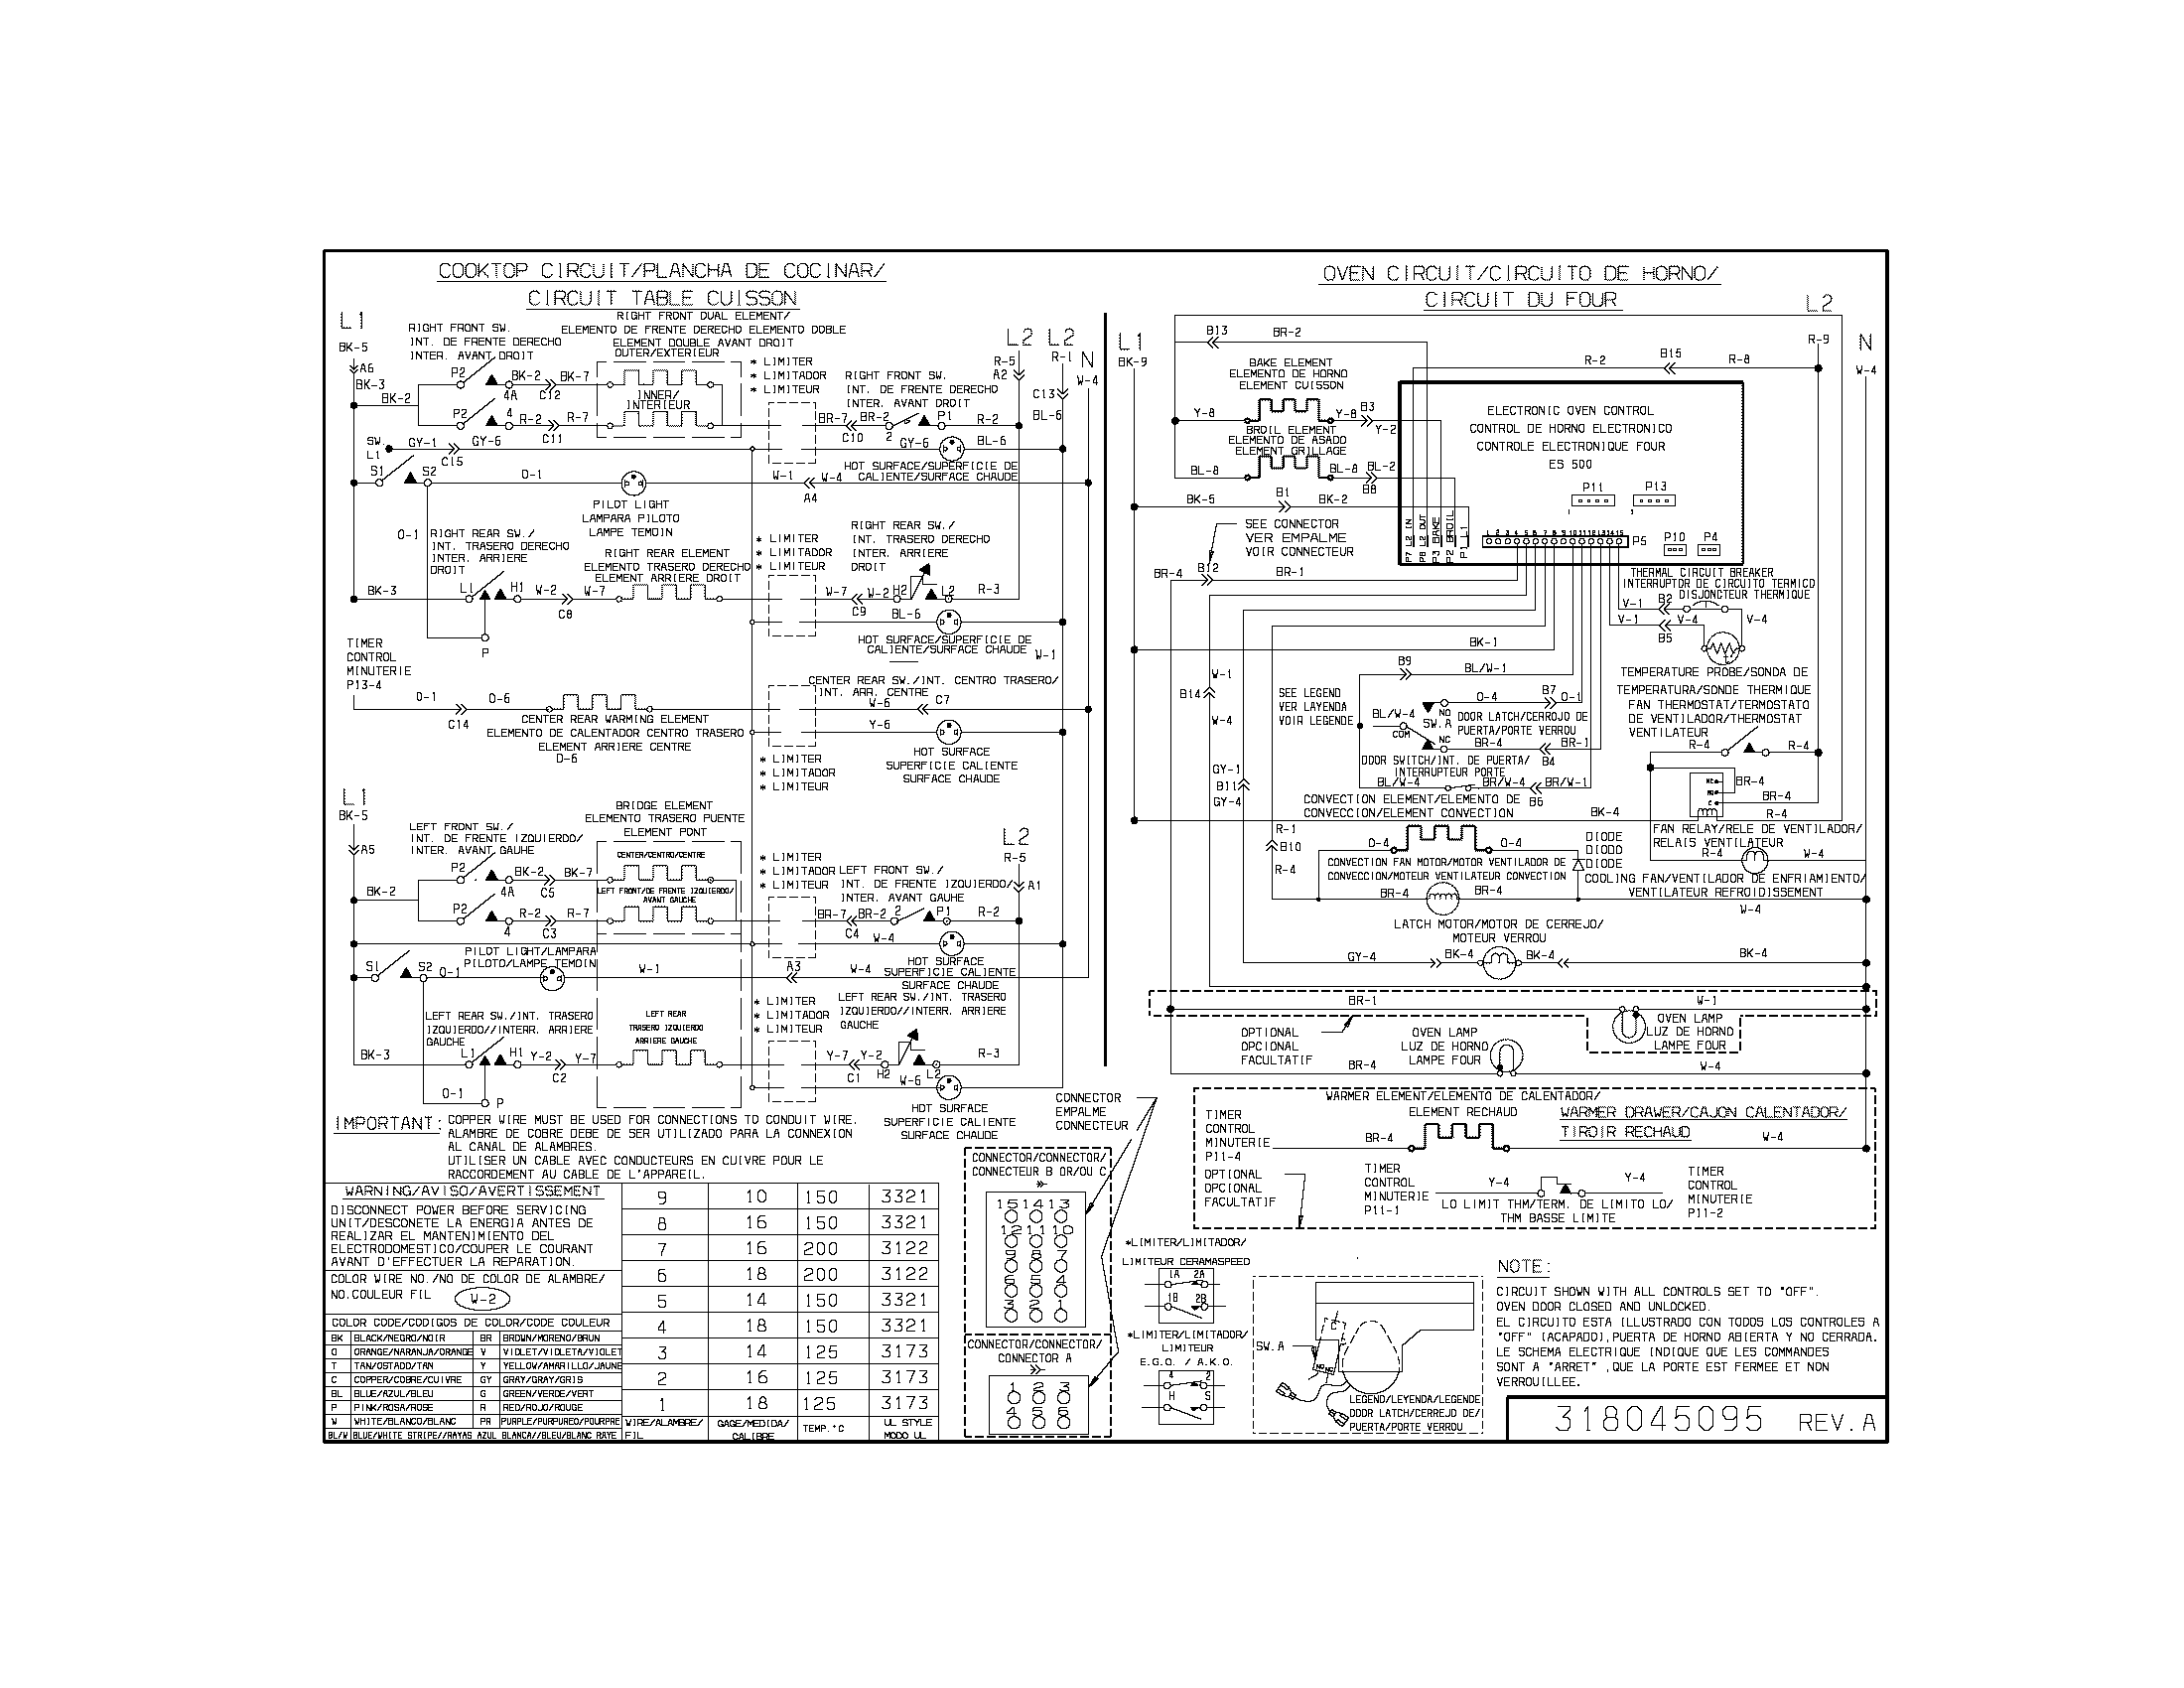 wiring diagram parts frigidaire cpes389cc2 range timer stove clocks and appliance timers frigidaire refrigerator wiring schematic at eliteediting.co